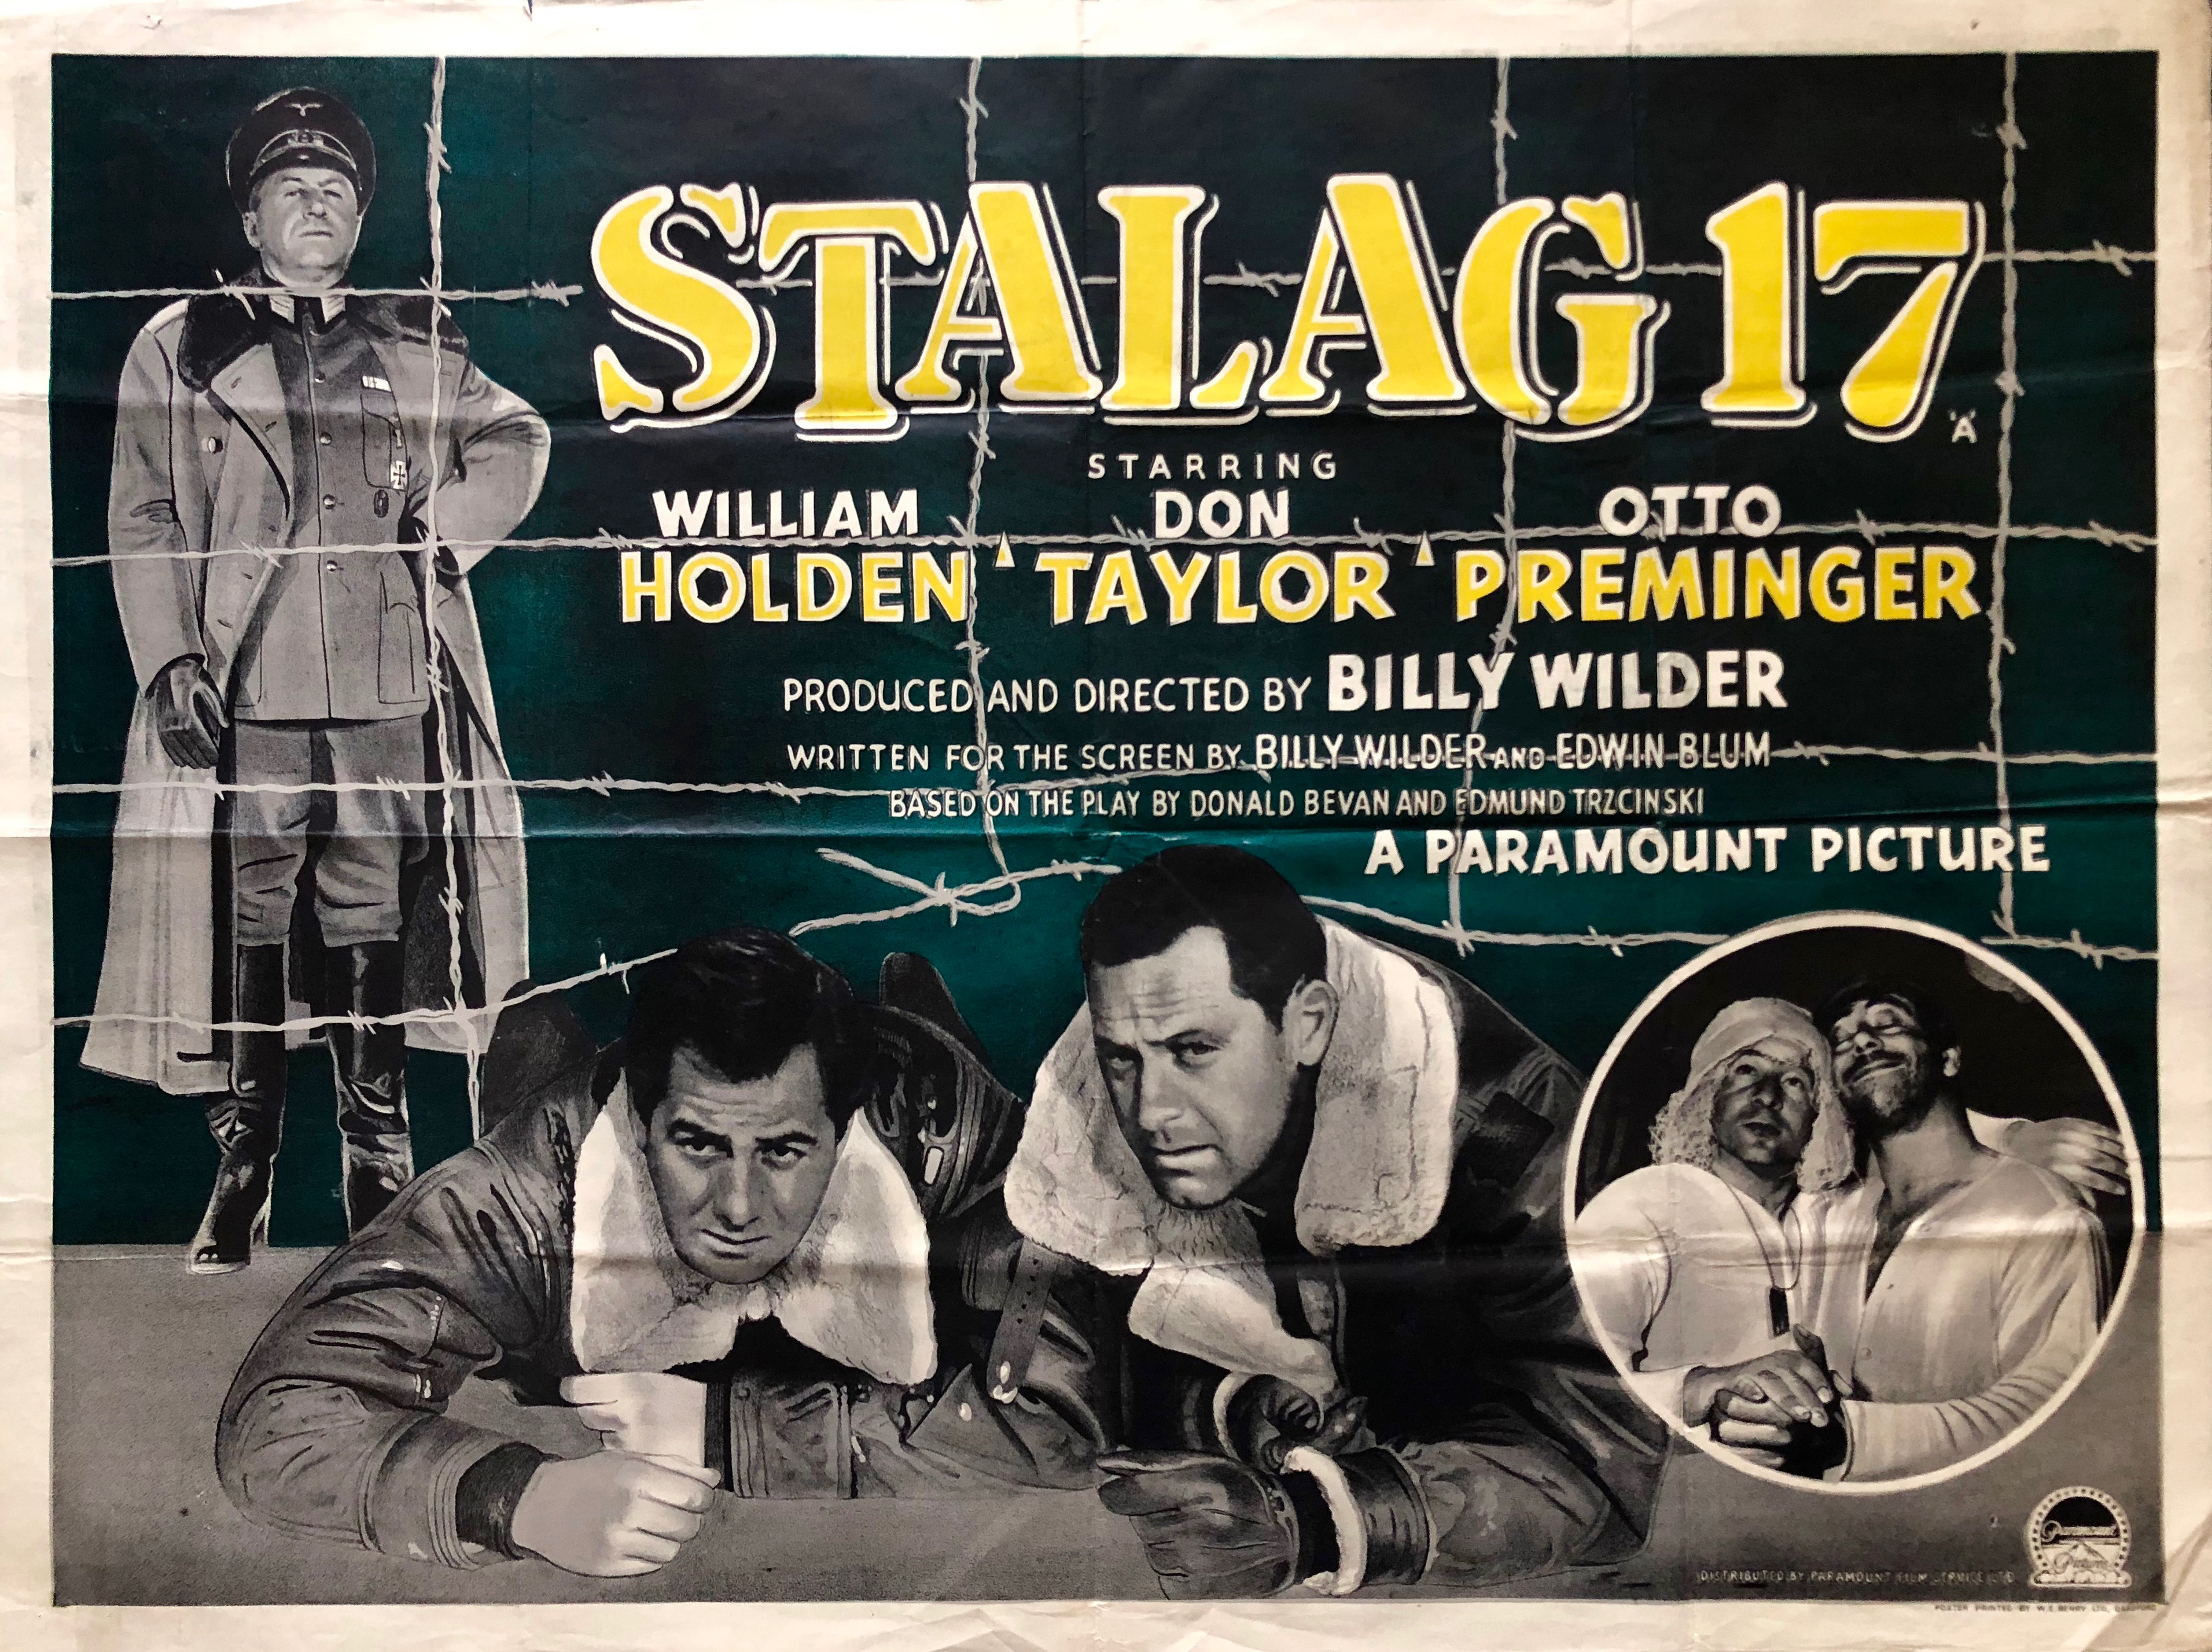 Original STALAG 17 Movie Poster - Billy Wilder - William Holden - War